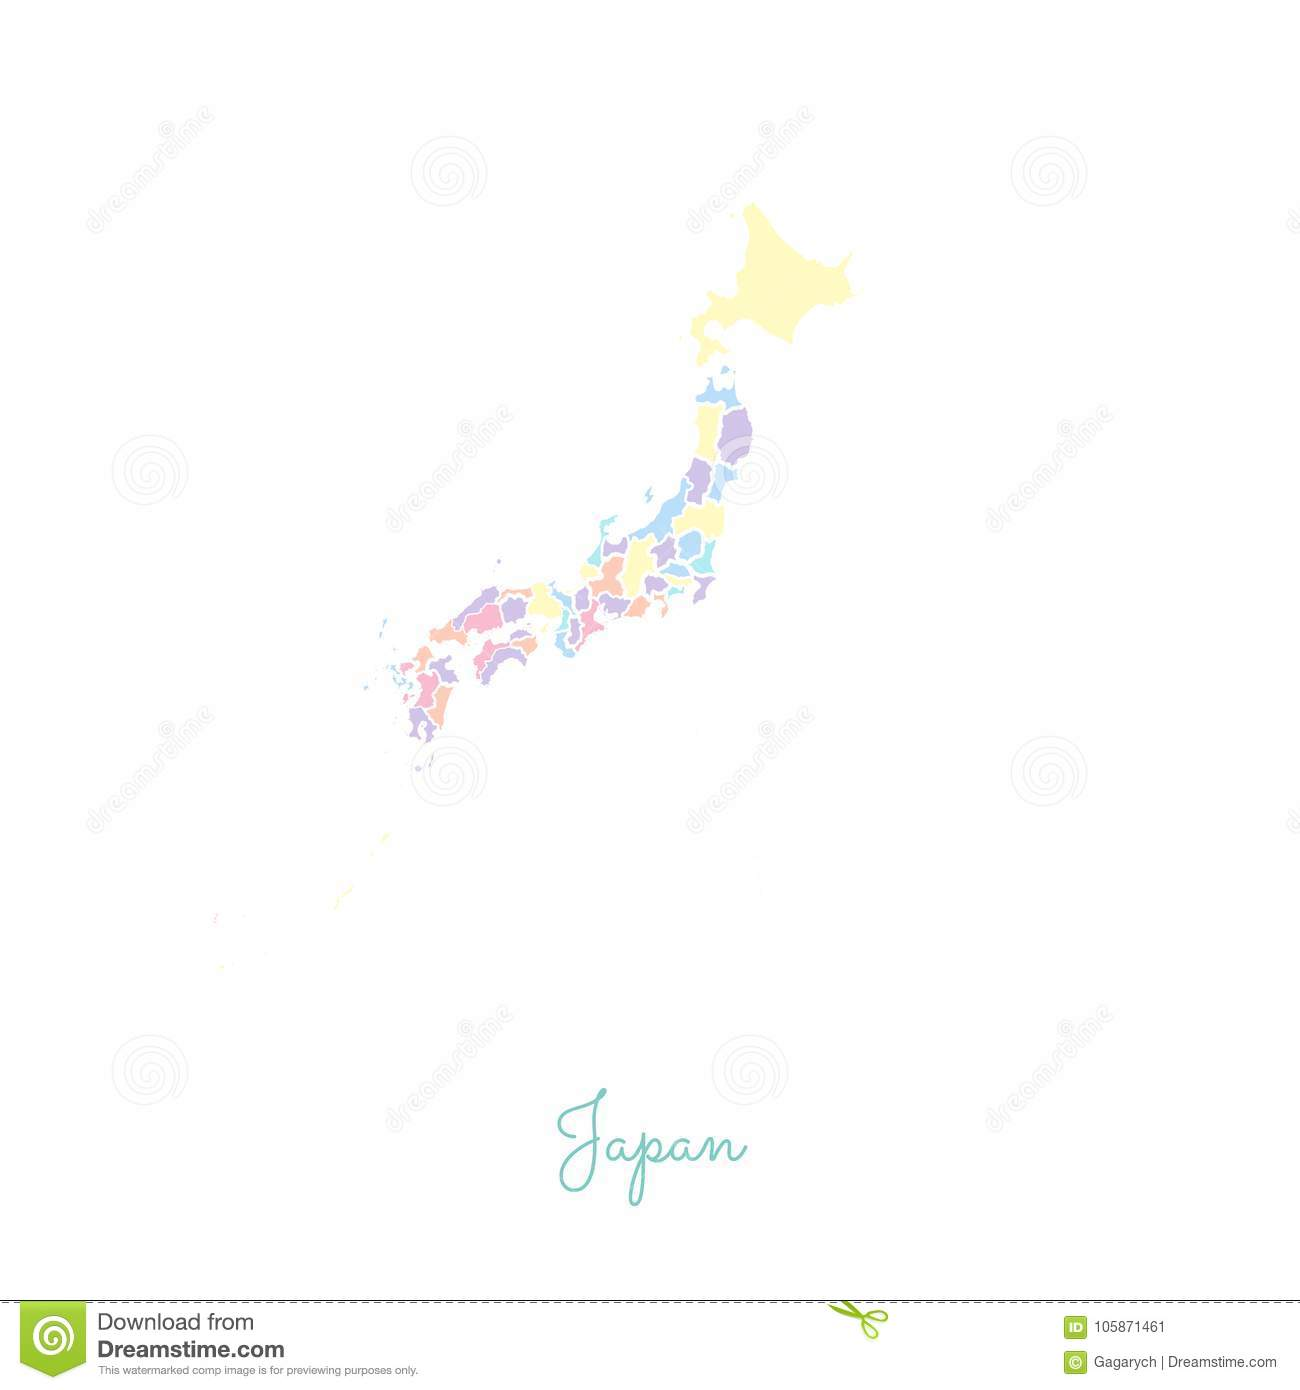 Japan Map Regions.Japan Region Map Colorful With White Outline Stock Vector